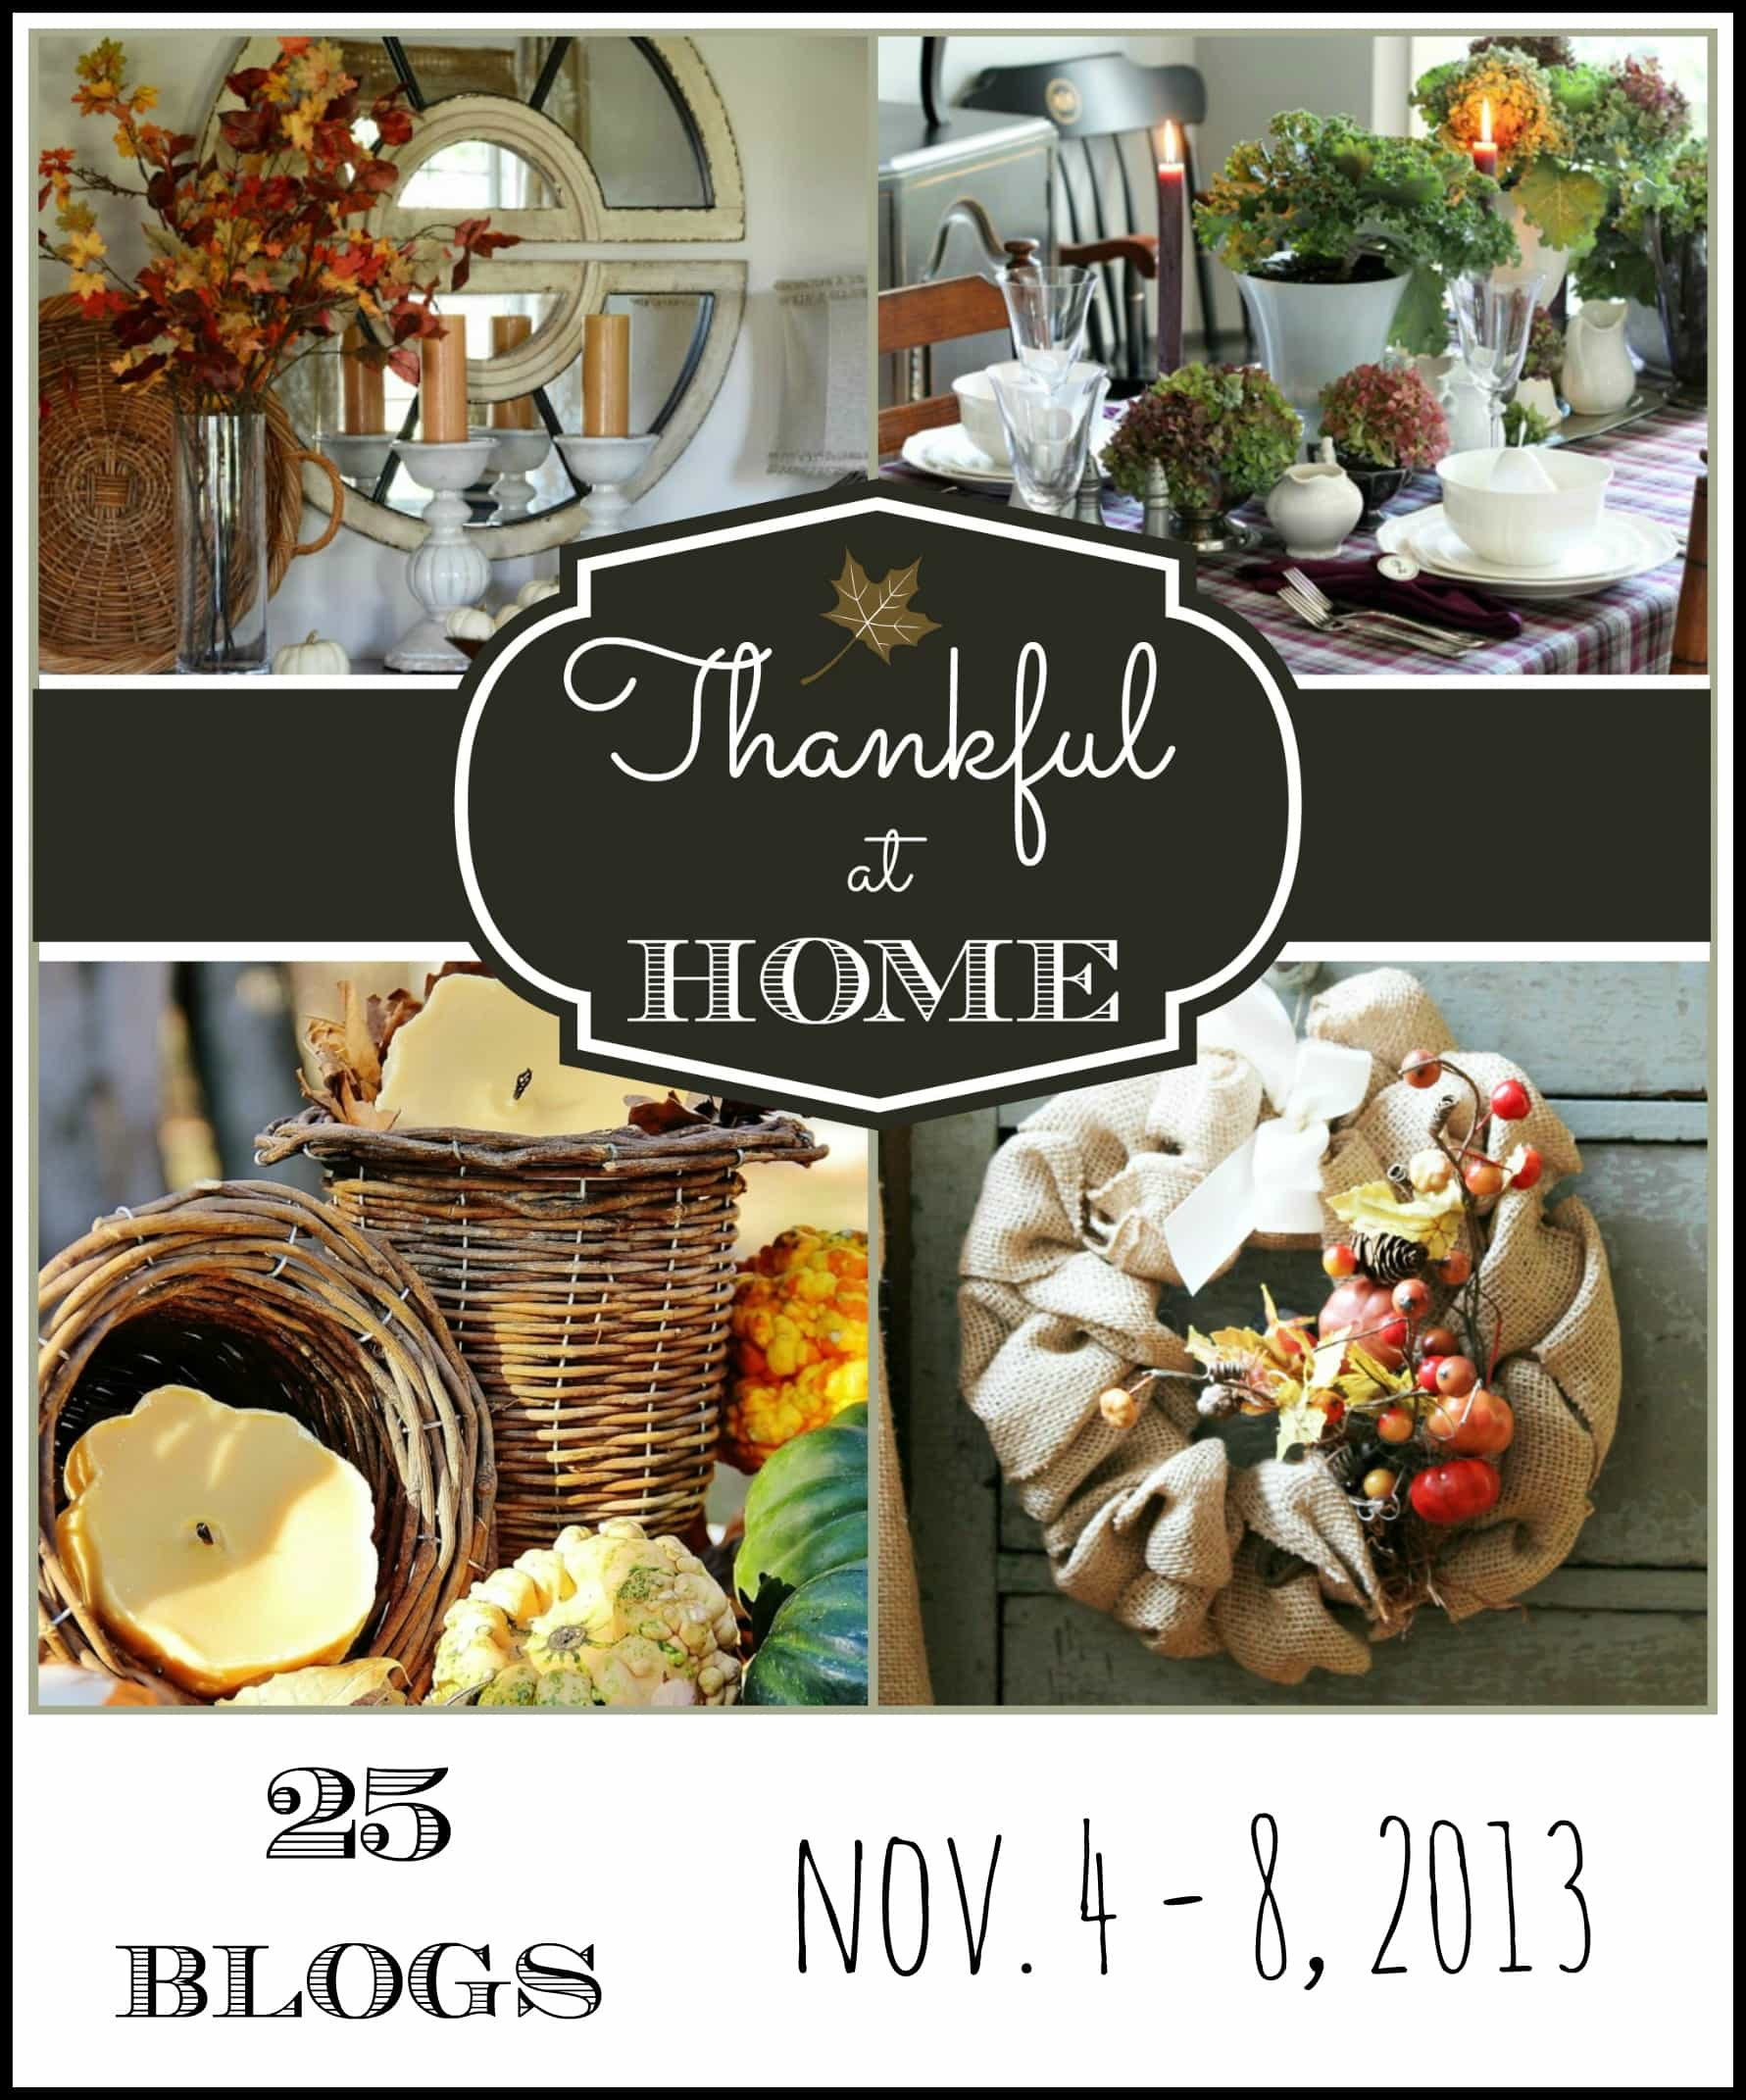 thankful at home dates v2 PNG (1)